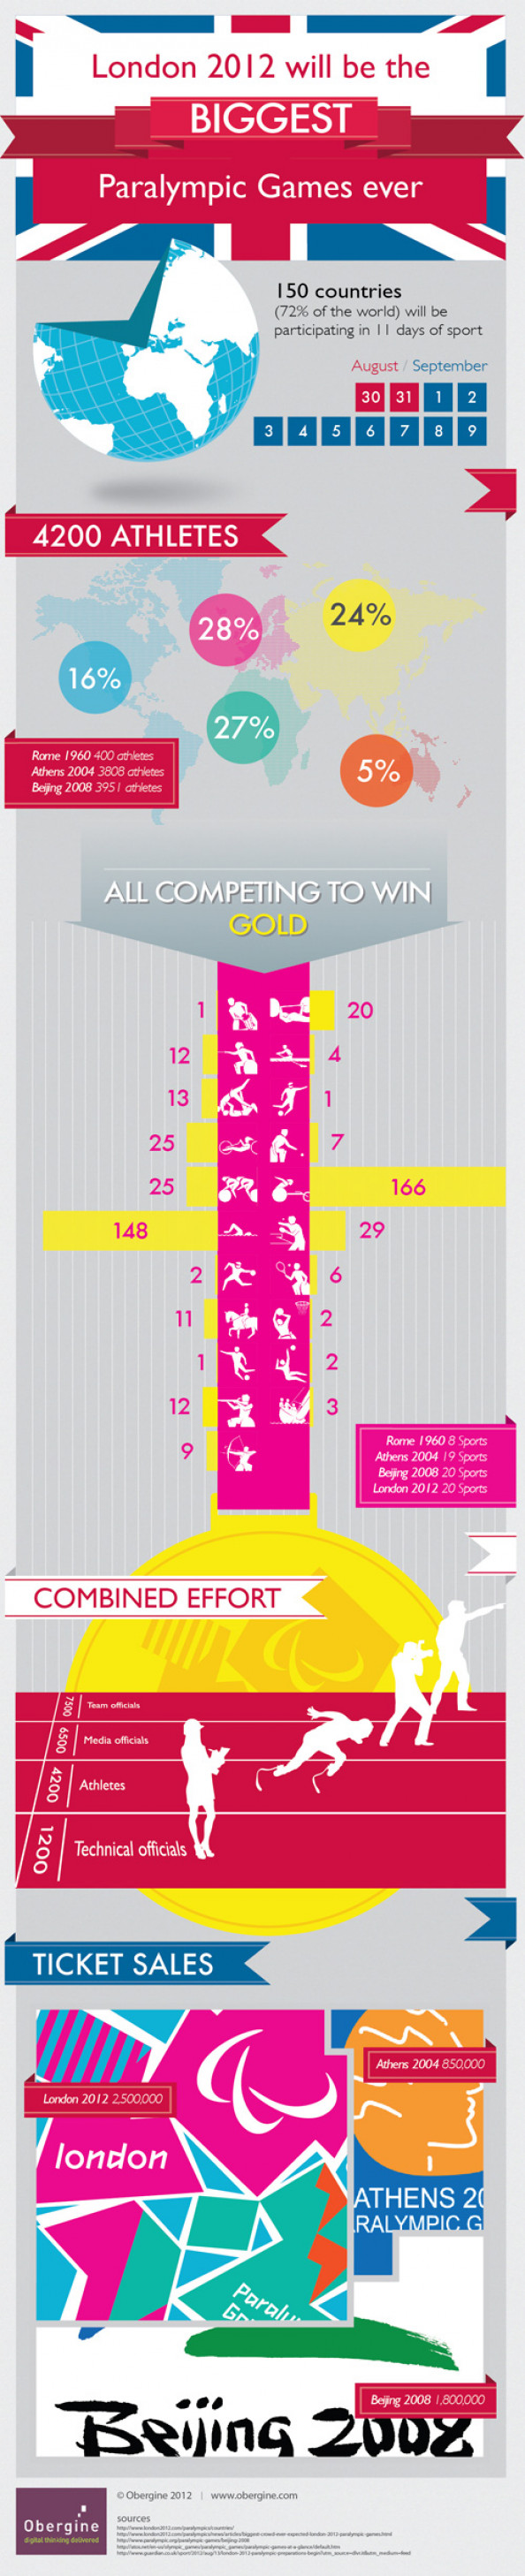 London 2012 will be the biggest Paralympic Games ever Infographic